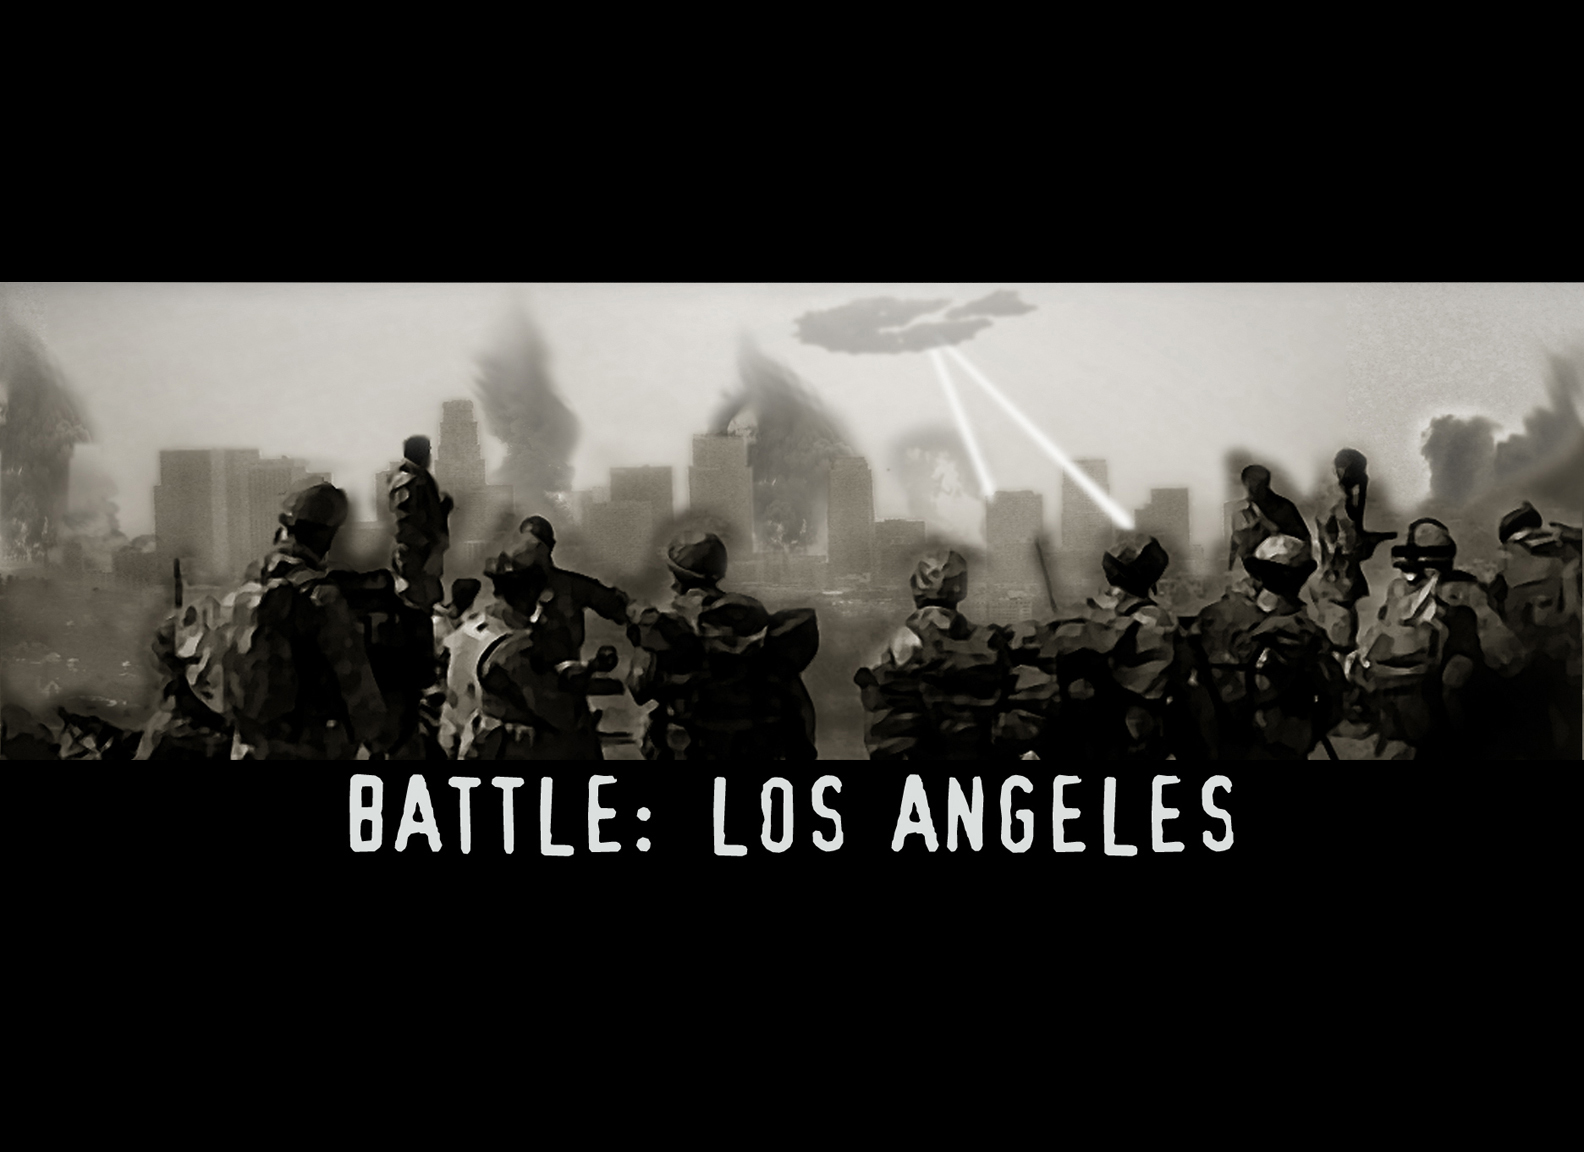 https://i0.wp.com/www.krackblog.com/wp-content/uploads/2011/03/BattleLA_logo_text_081909.jpg